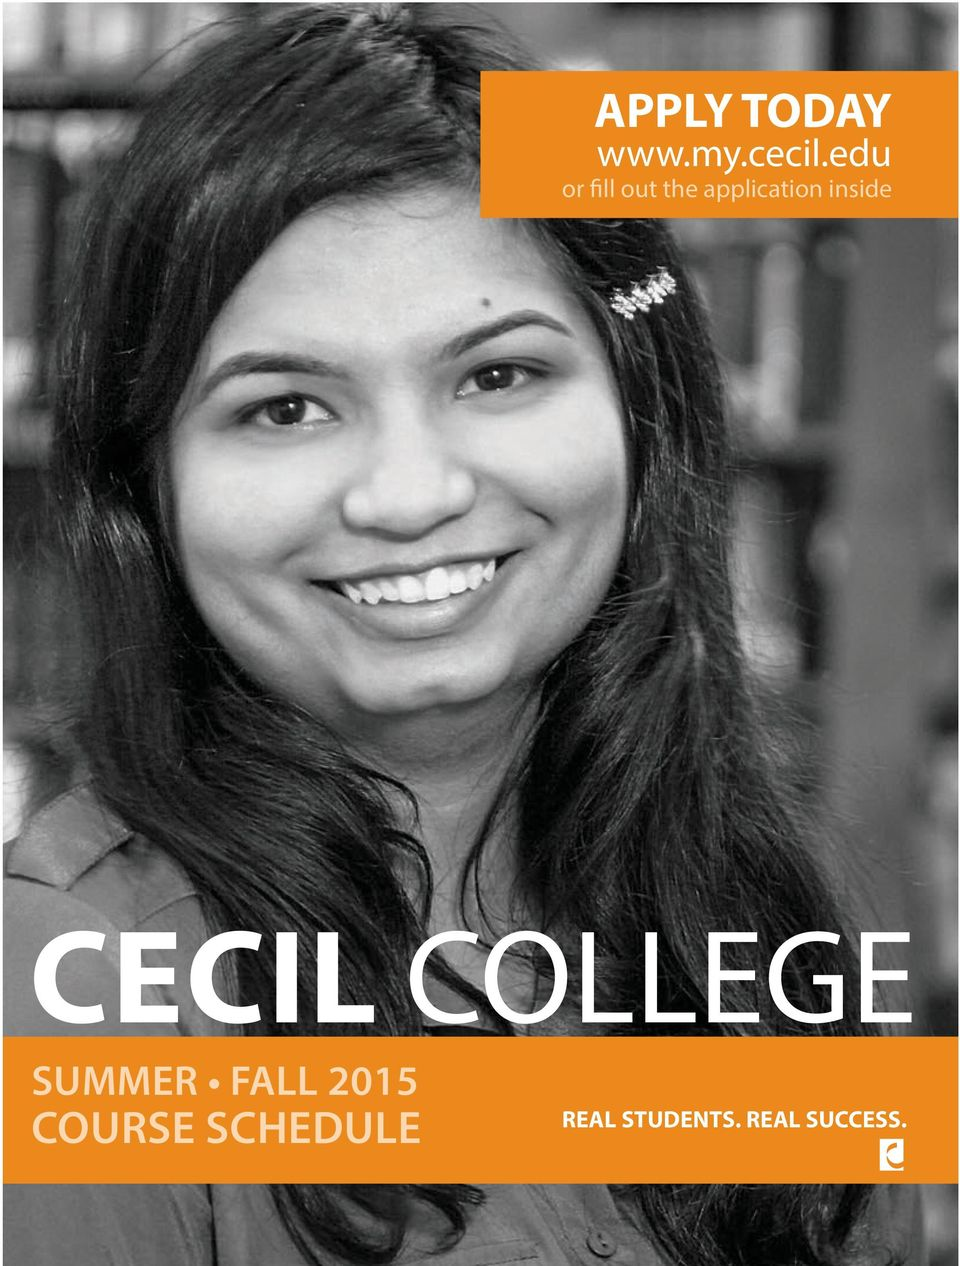 inside CECIL COLLEGE SUMMER FALL